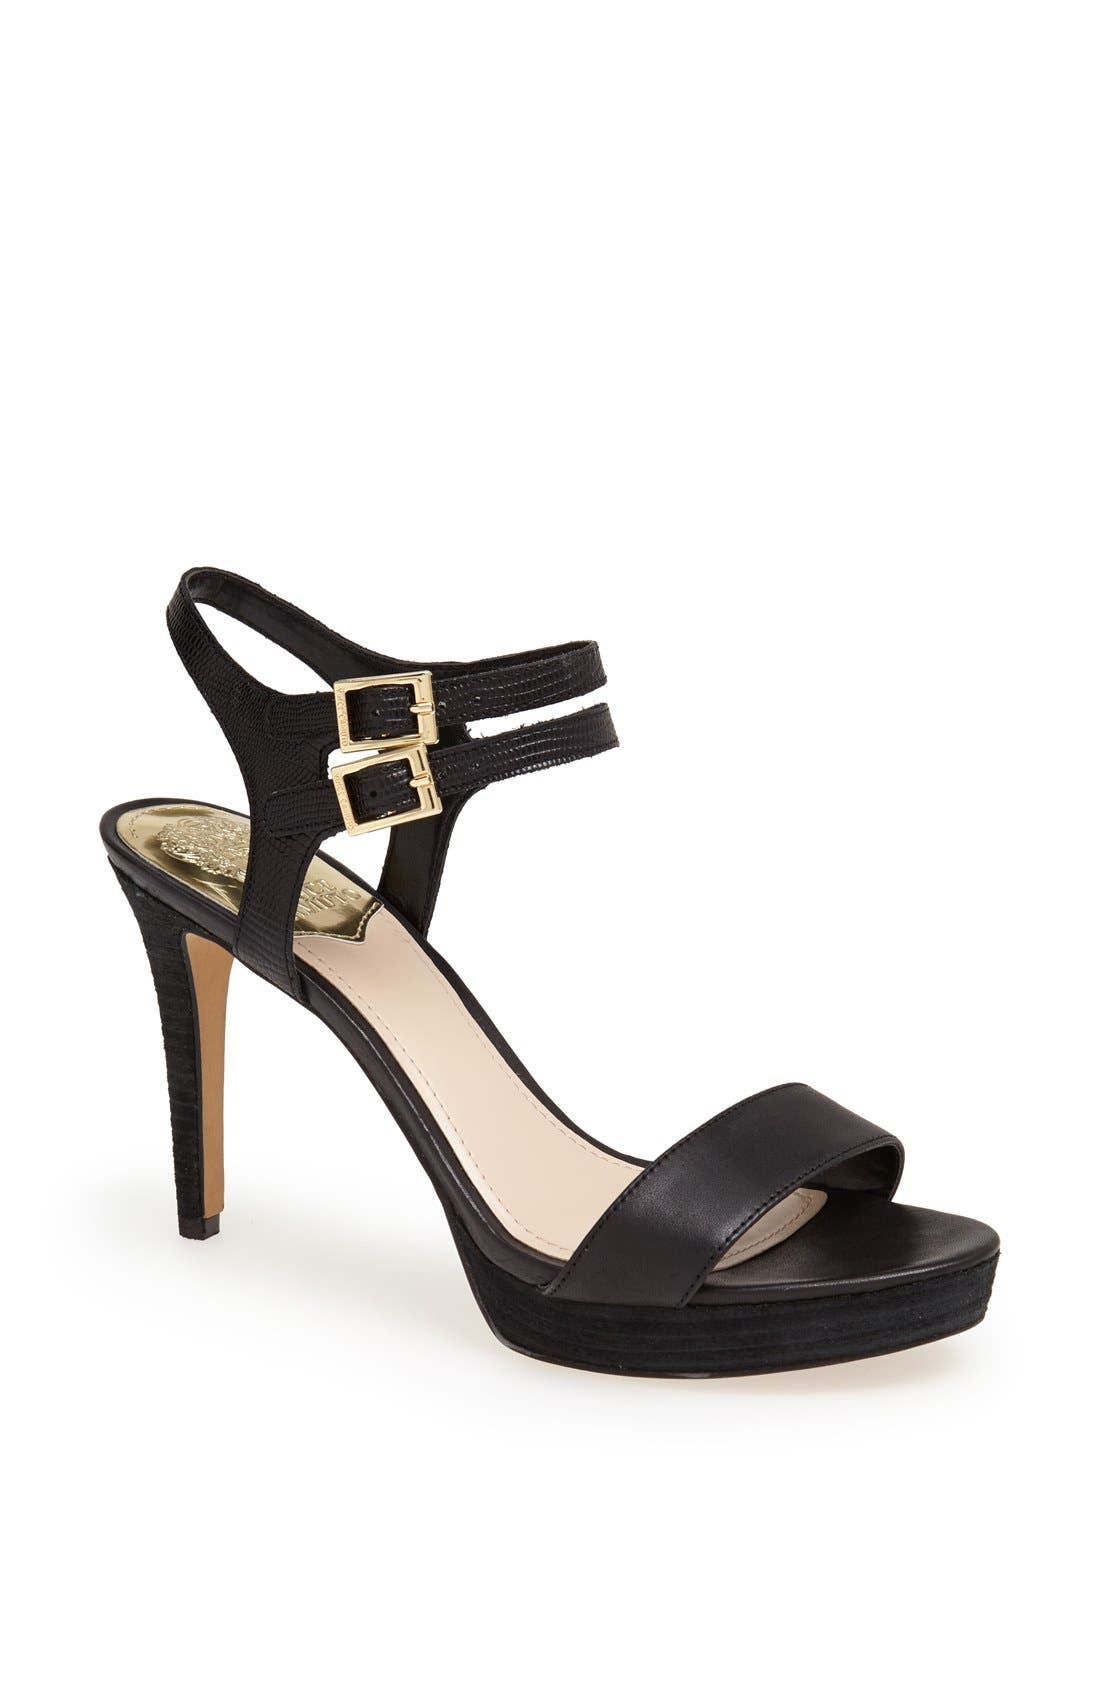 Alternate Image 1 Selected - Vince Camuto 'Renalla' Sandal